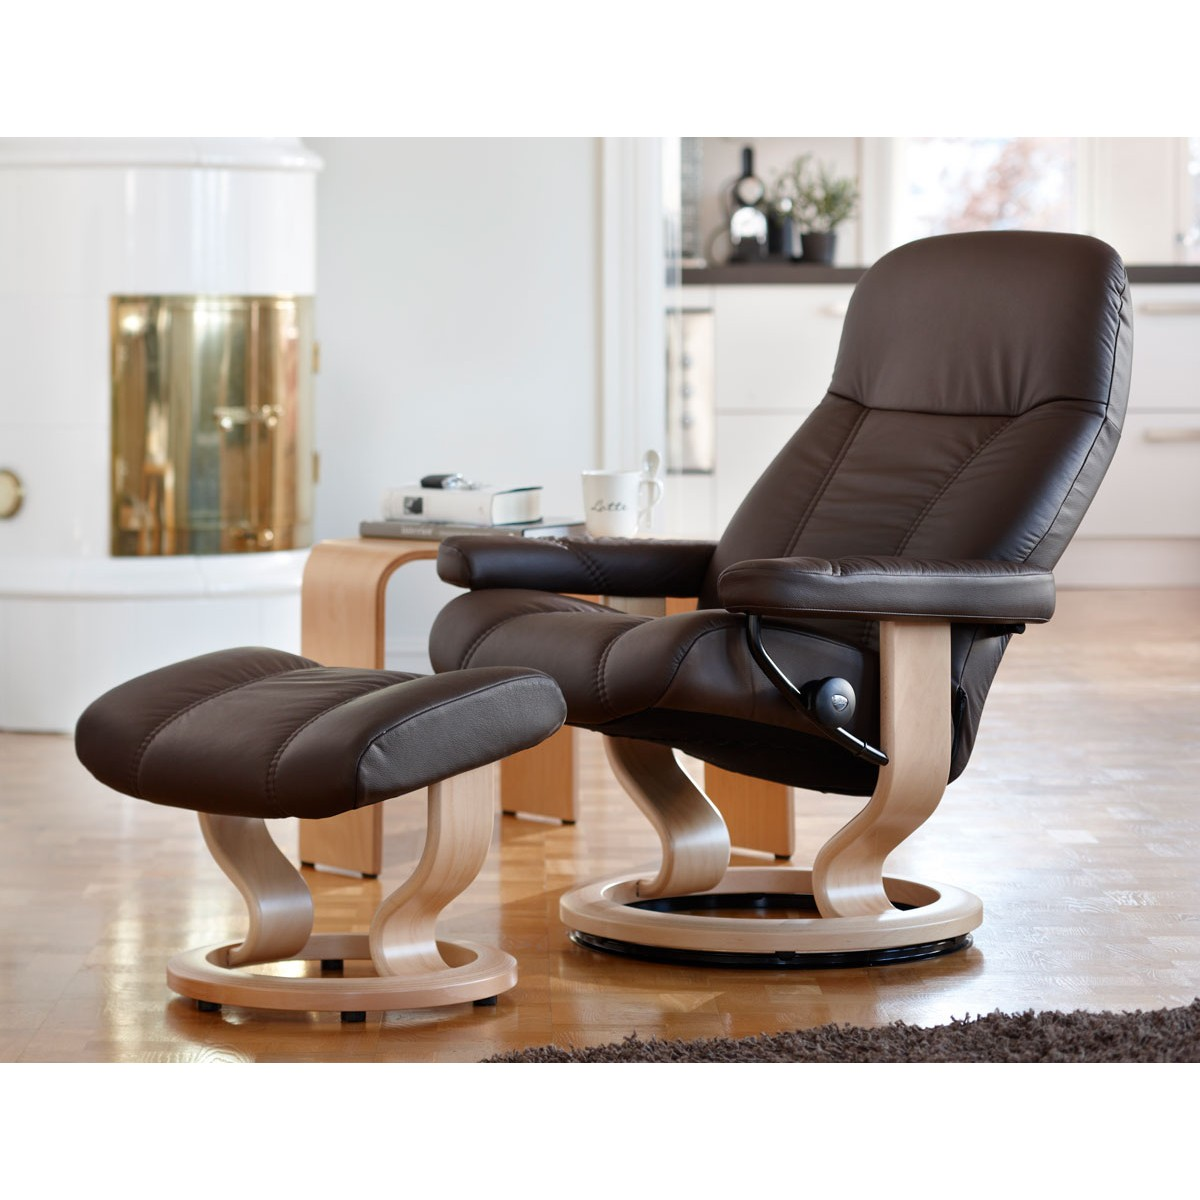 Stressless Consul Medium Recliner u0026 Ottoman  sc 1 st  Danco Modern & Stressless Consul Medium Recliner u0026 Ottoman from $1795.00 by ... islam-shia.org